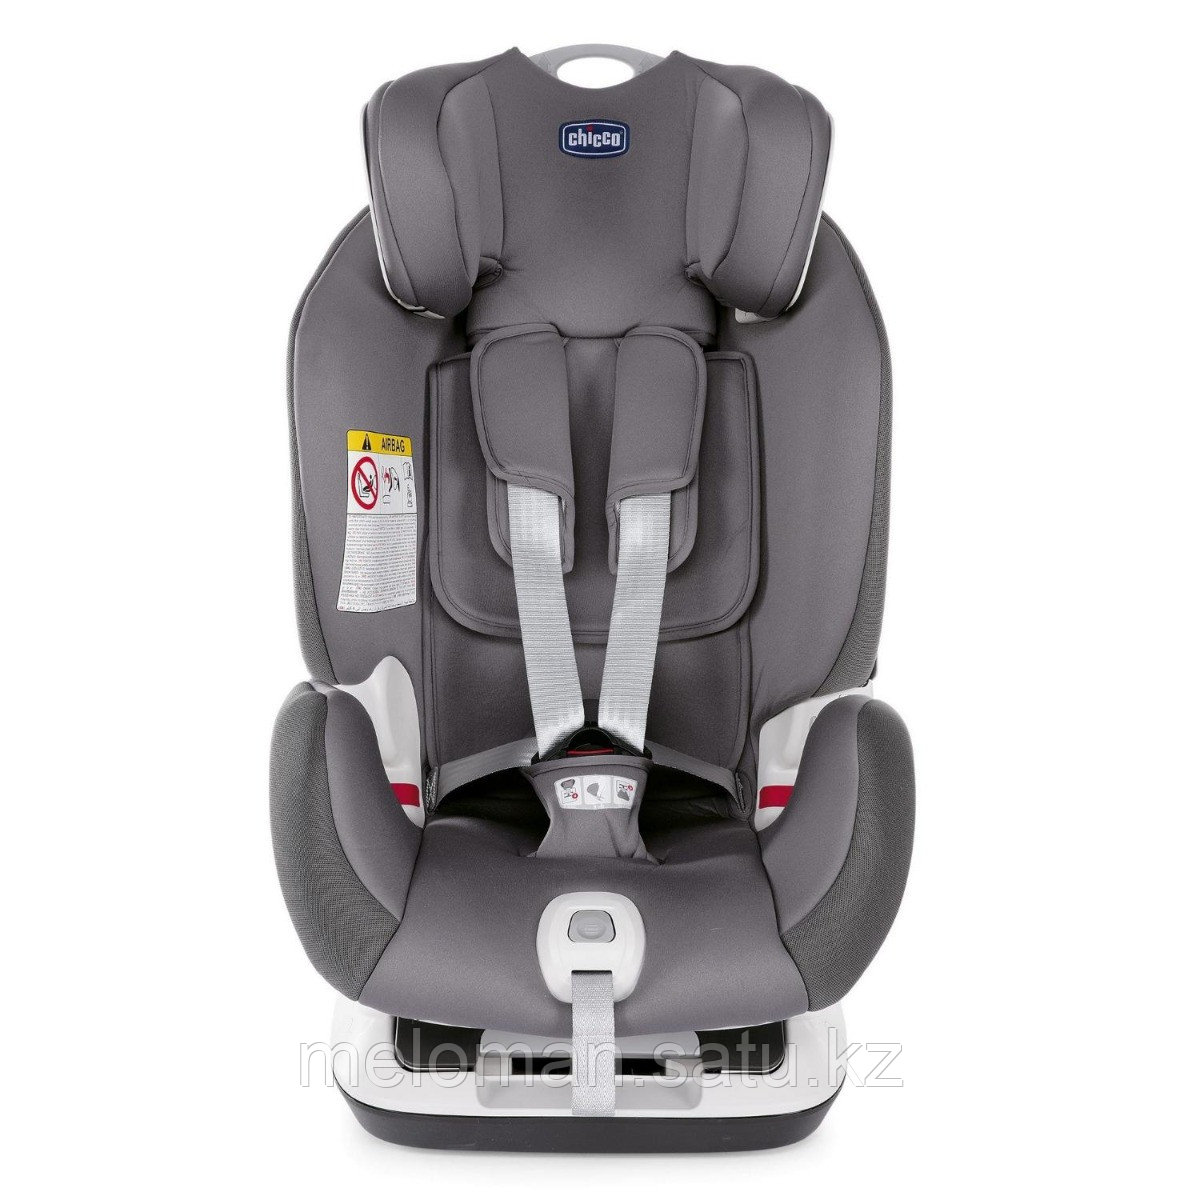 Chicco: Автокресло Seat Up 012 Pearl (0-25 kg) 0+ - фото 4